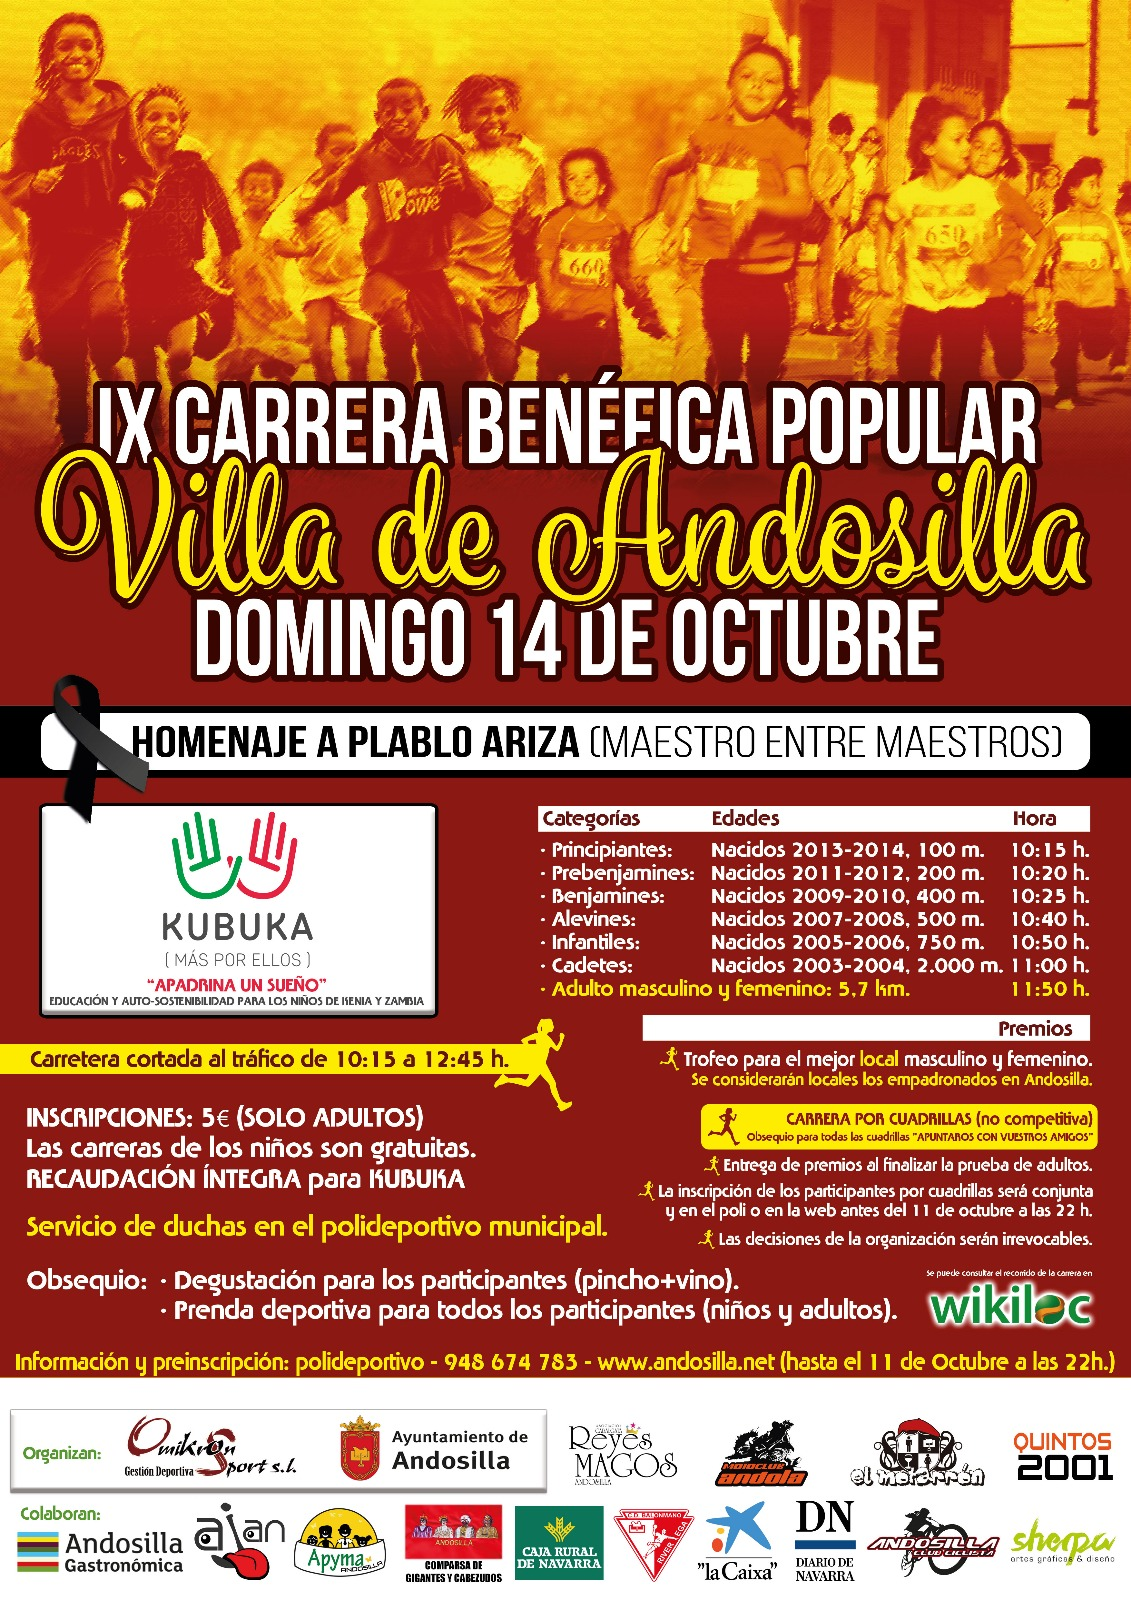 iX Carrera Popular